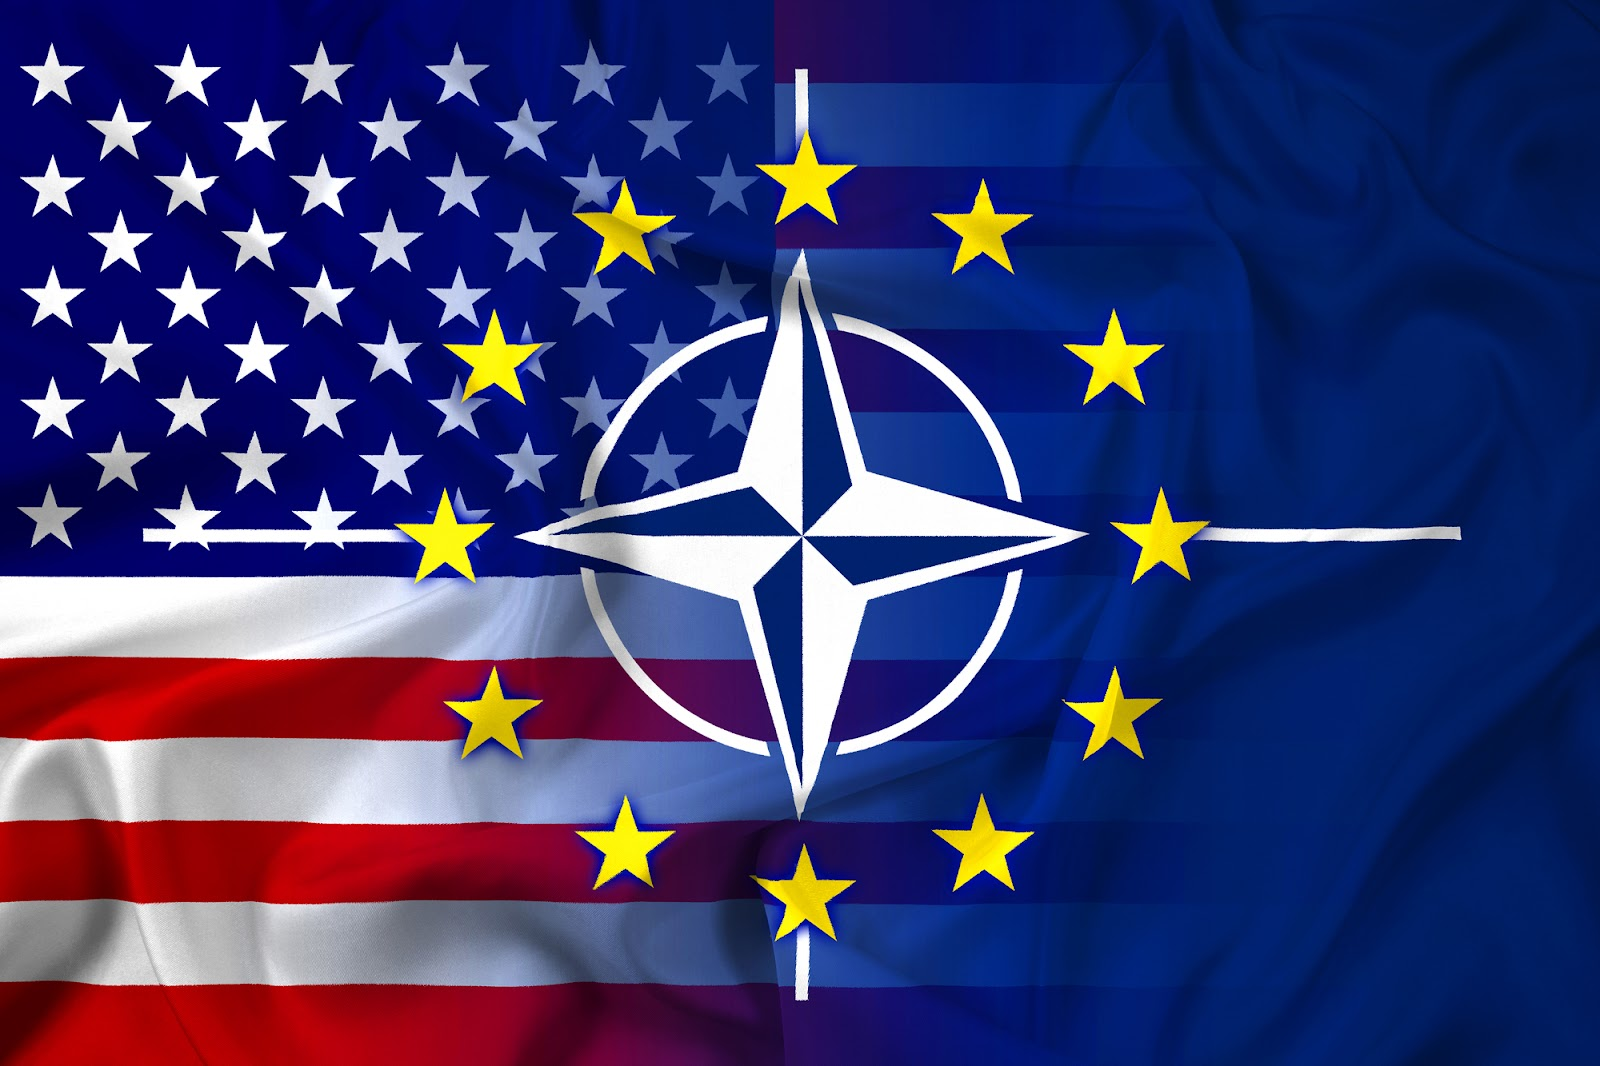 The nato sign with the american flag and the European stars